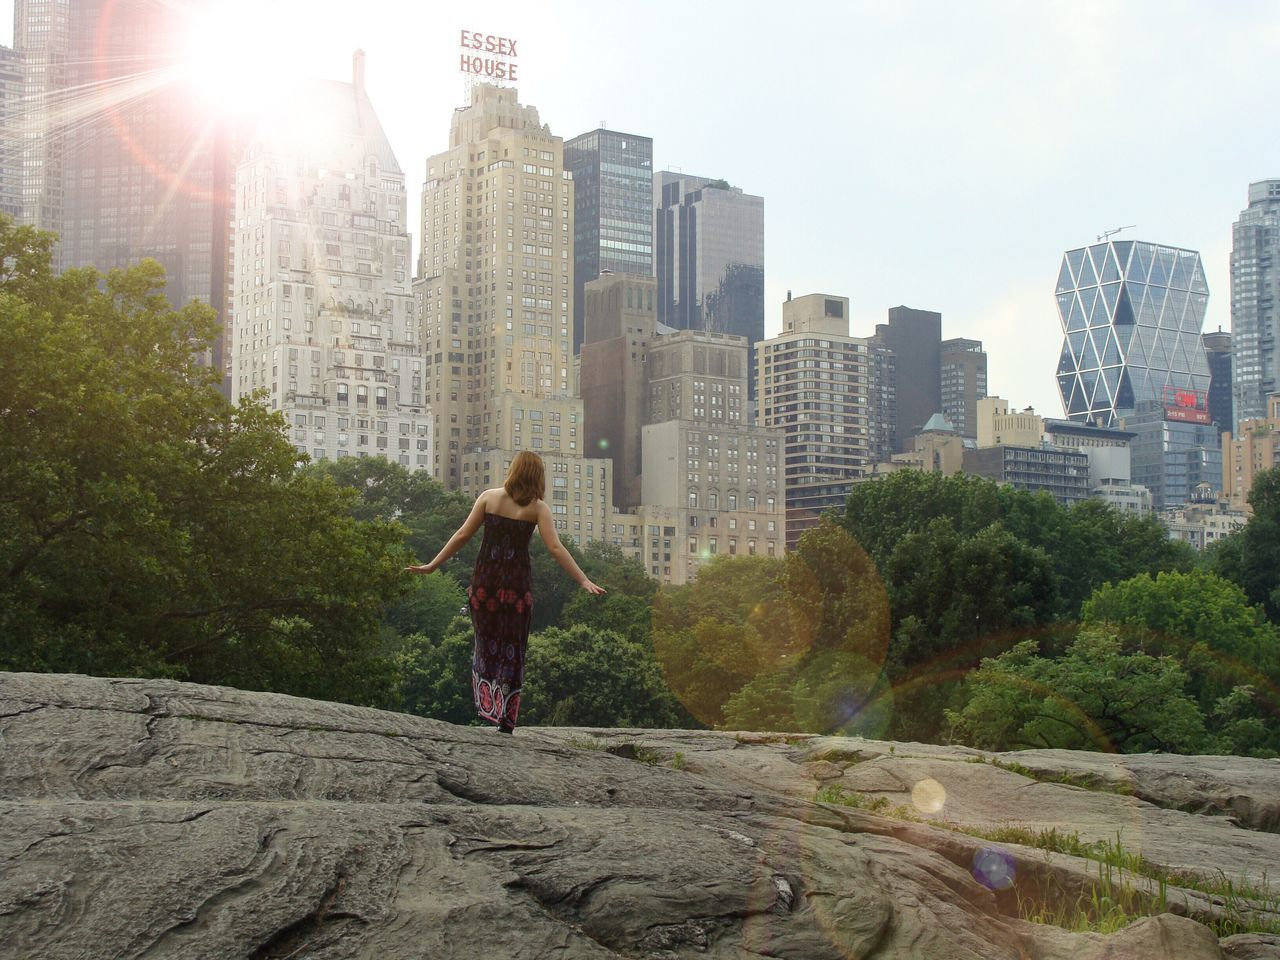 The girl in Central Park building exterior Architecture built structure lens flare one person day City Tree real people Standing outdoors sky Sunlight only women Adapted to the City Alternatives to Stock Photos